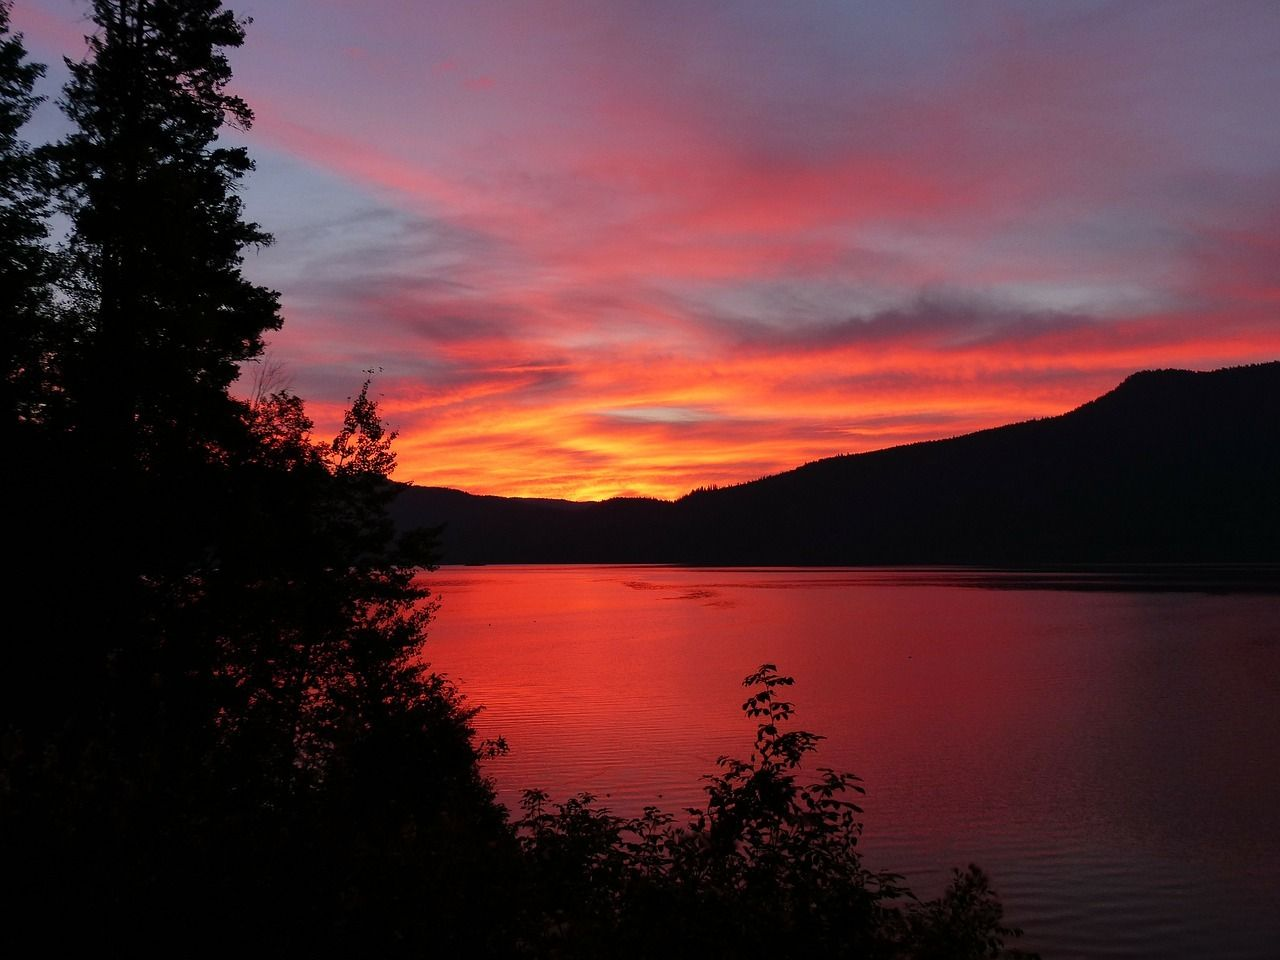 The Great White North Is Home To Great Ice Wines True But That Observation Is Lagging Behind The Times As Canada S Wine Indus Sunset Photos Sunrise Landscape